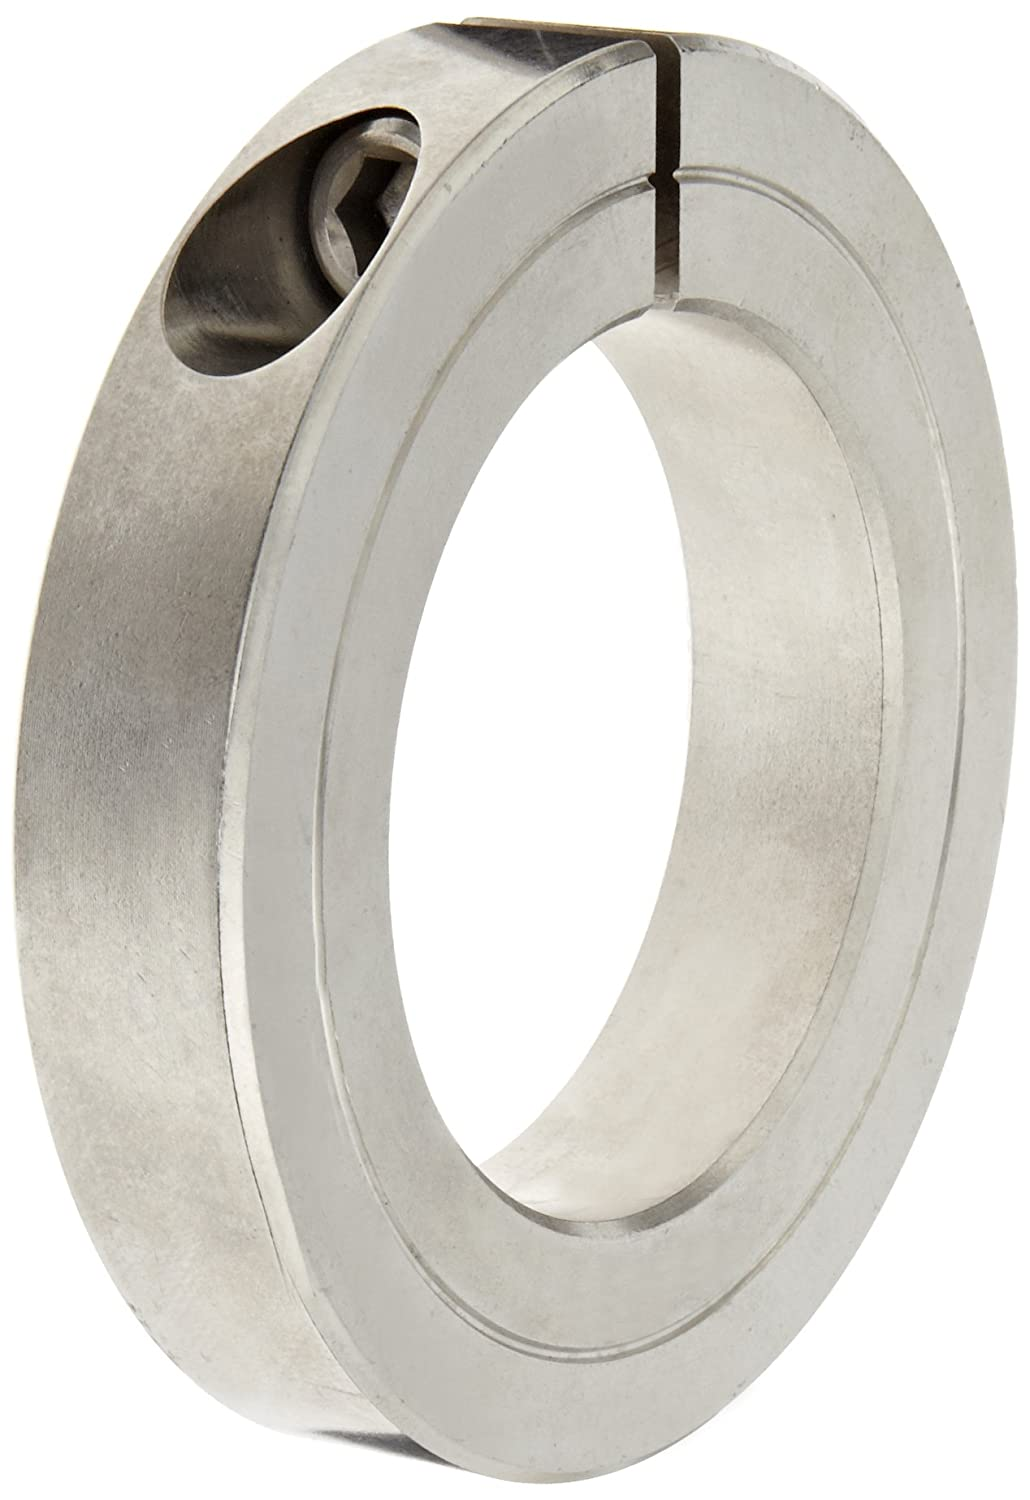 Climax Metal H1C-287-S T303 Recessed Screw Collar, One Piece, Stainless Steel, 2-7/8